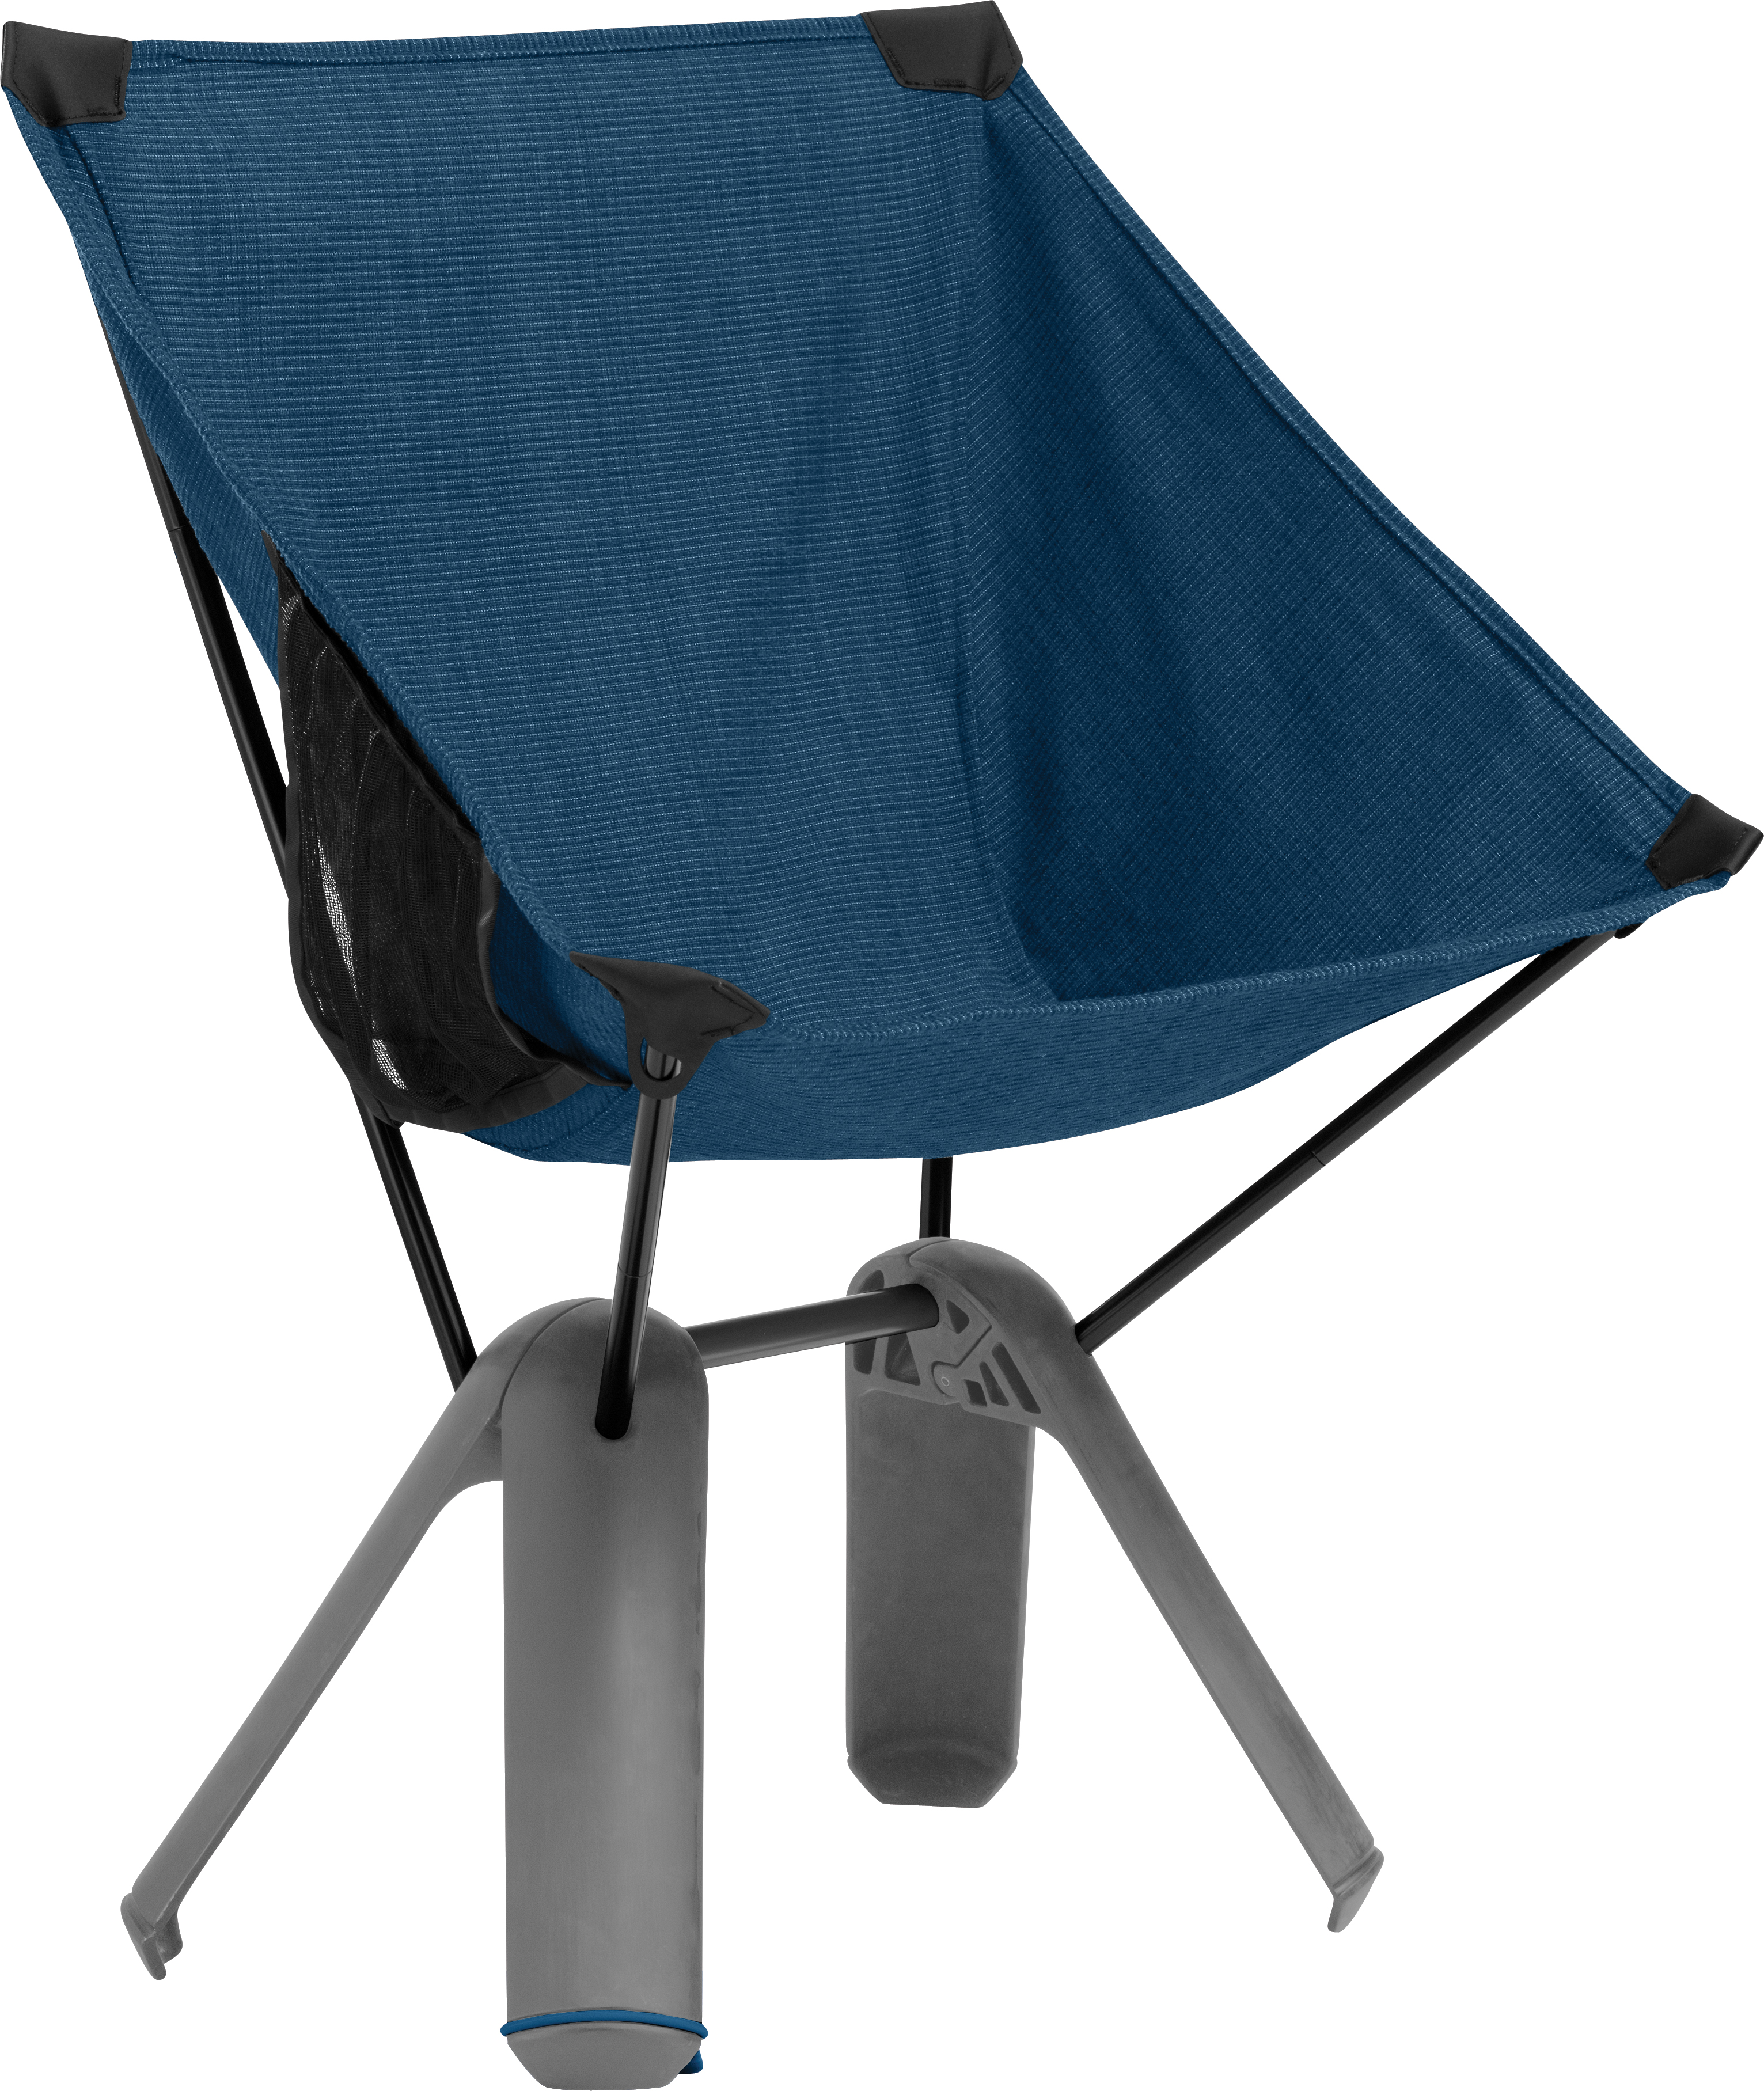 Chairs and chair kits for Backpacking